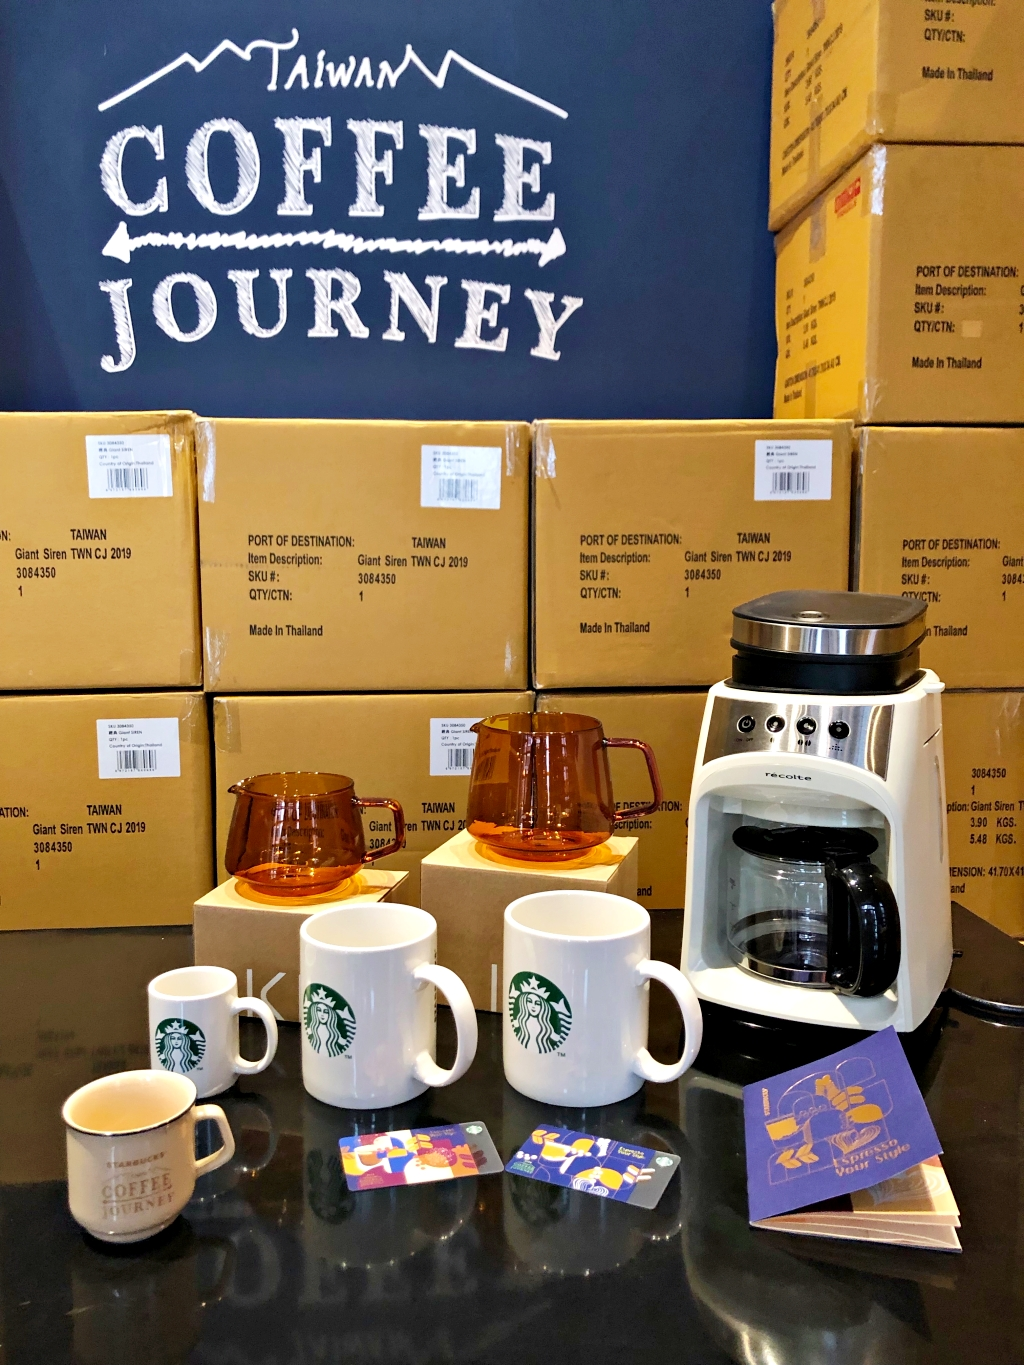 Starbucks Coffee Journey